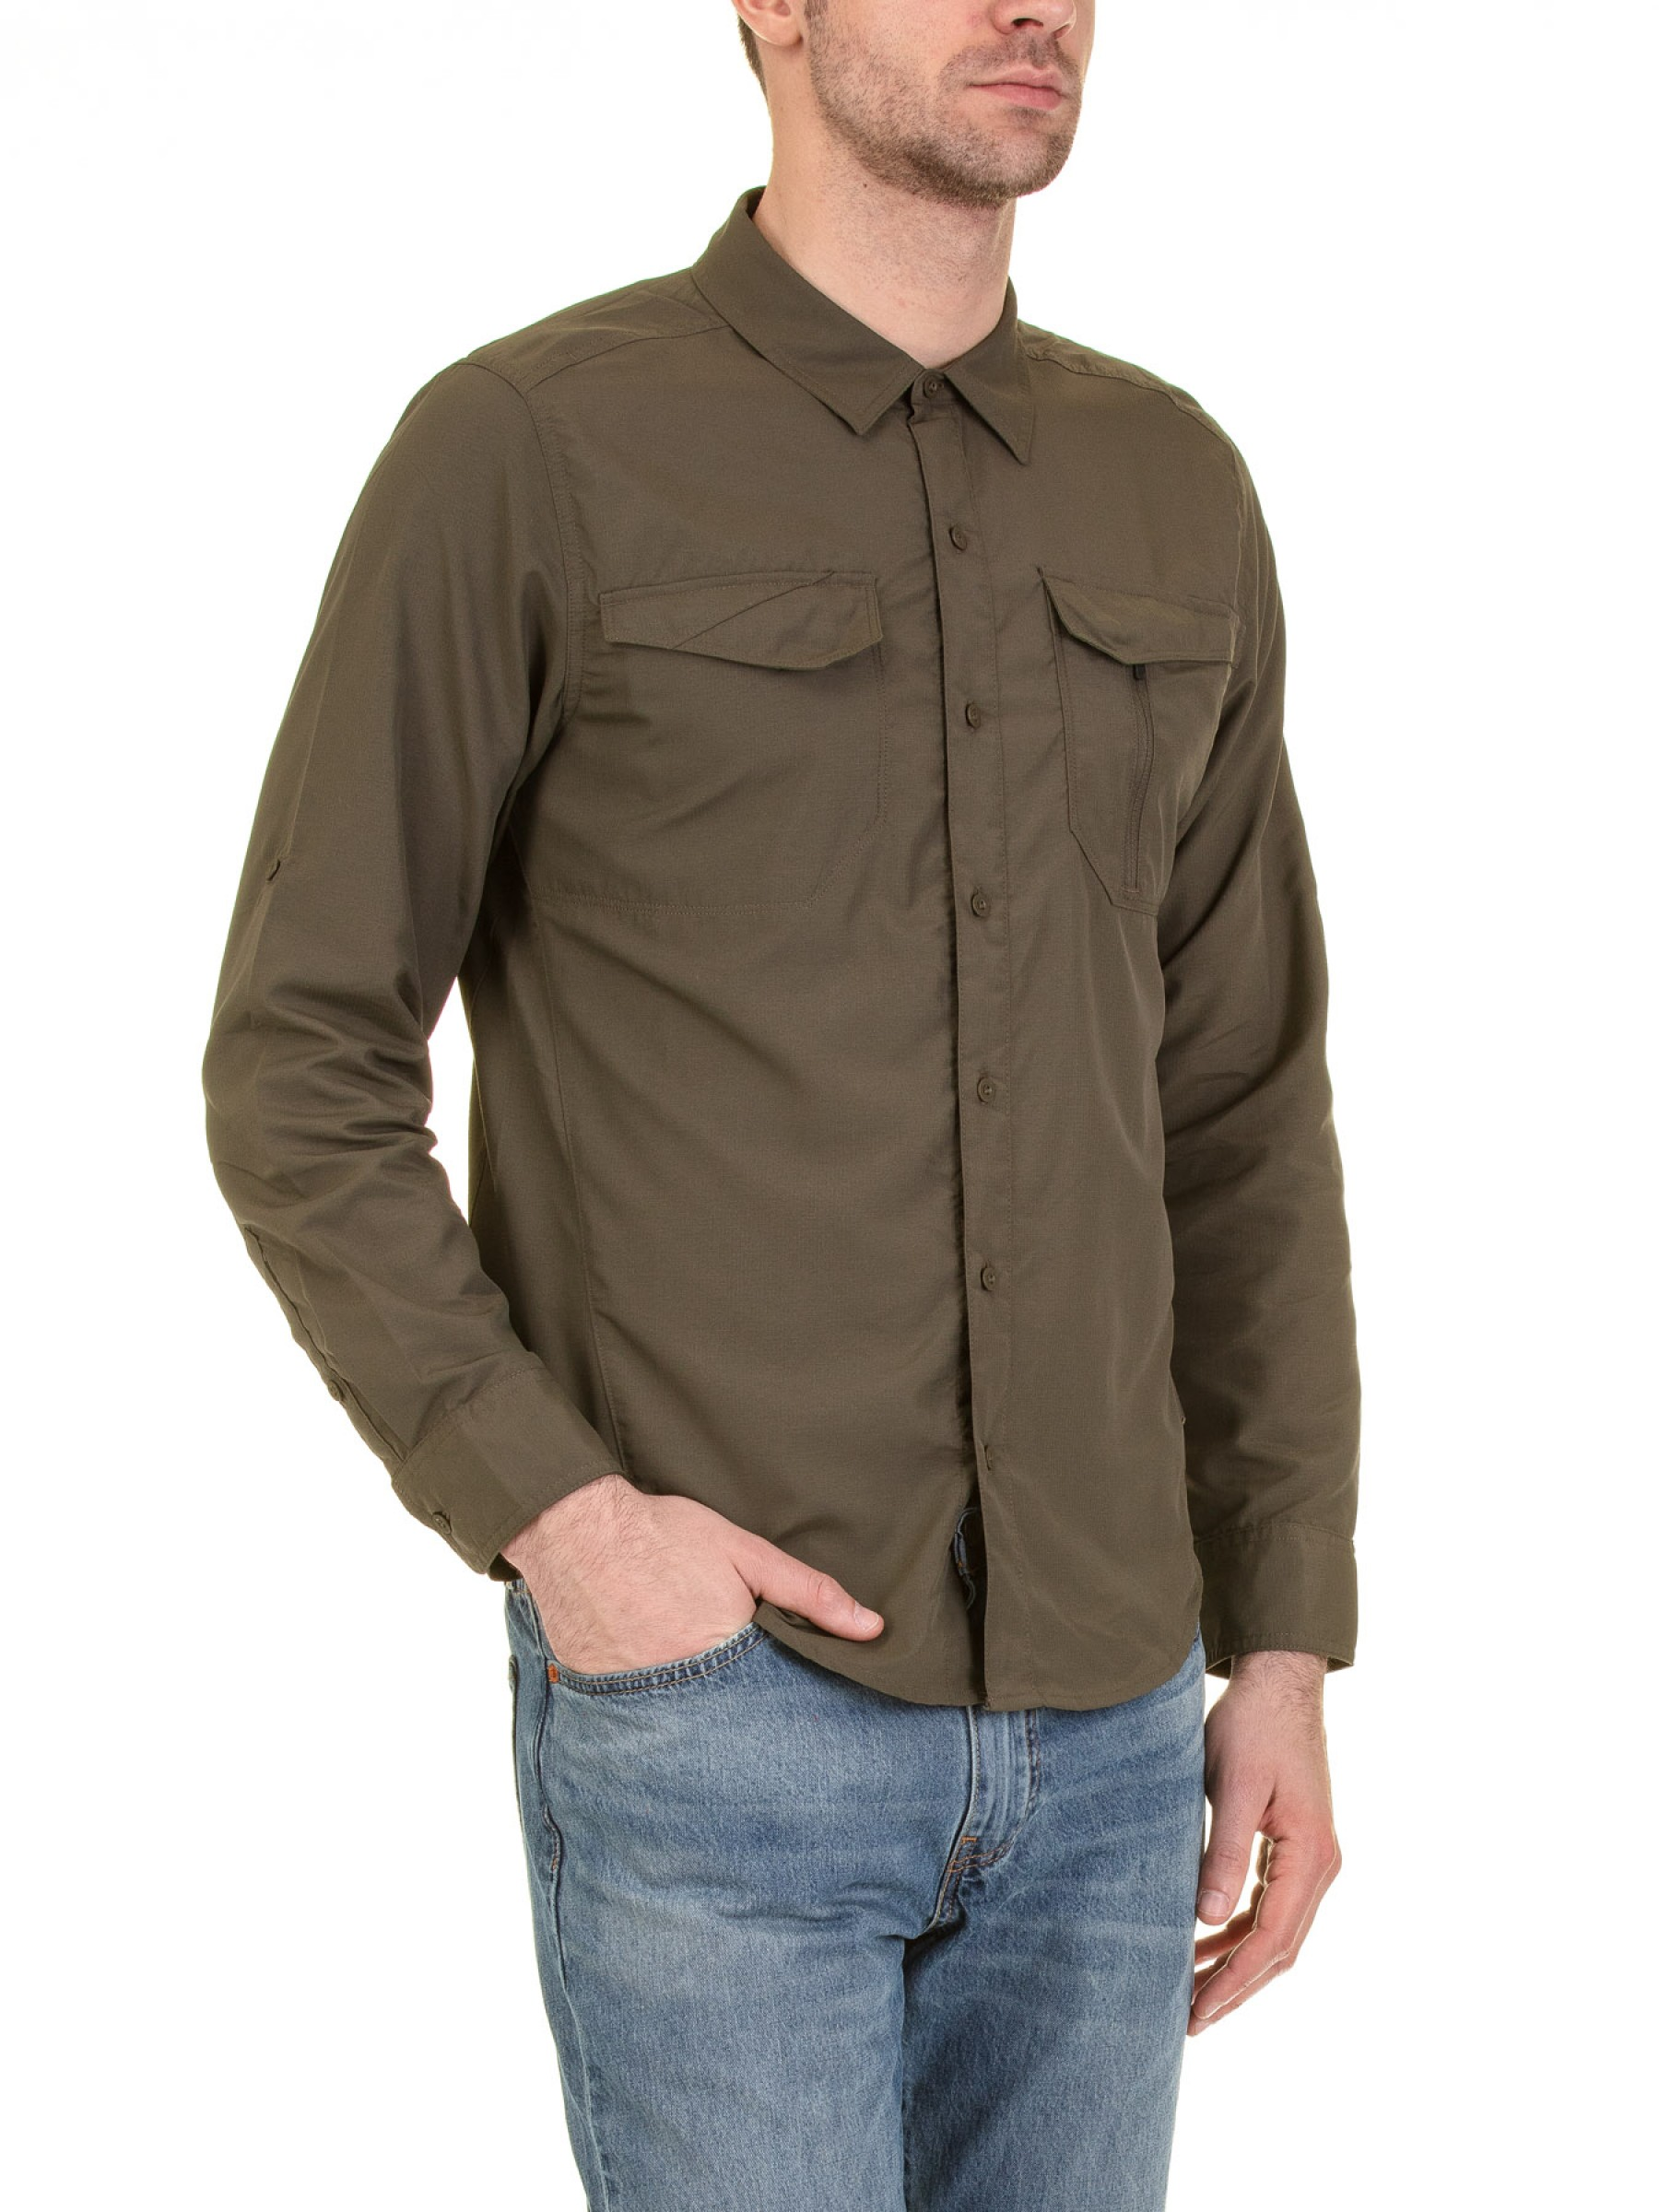 newest collection 8fb74 a92d9 Camicia Outdoor Manica Lunga Uomo Sequoia